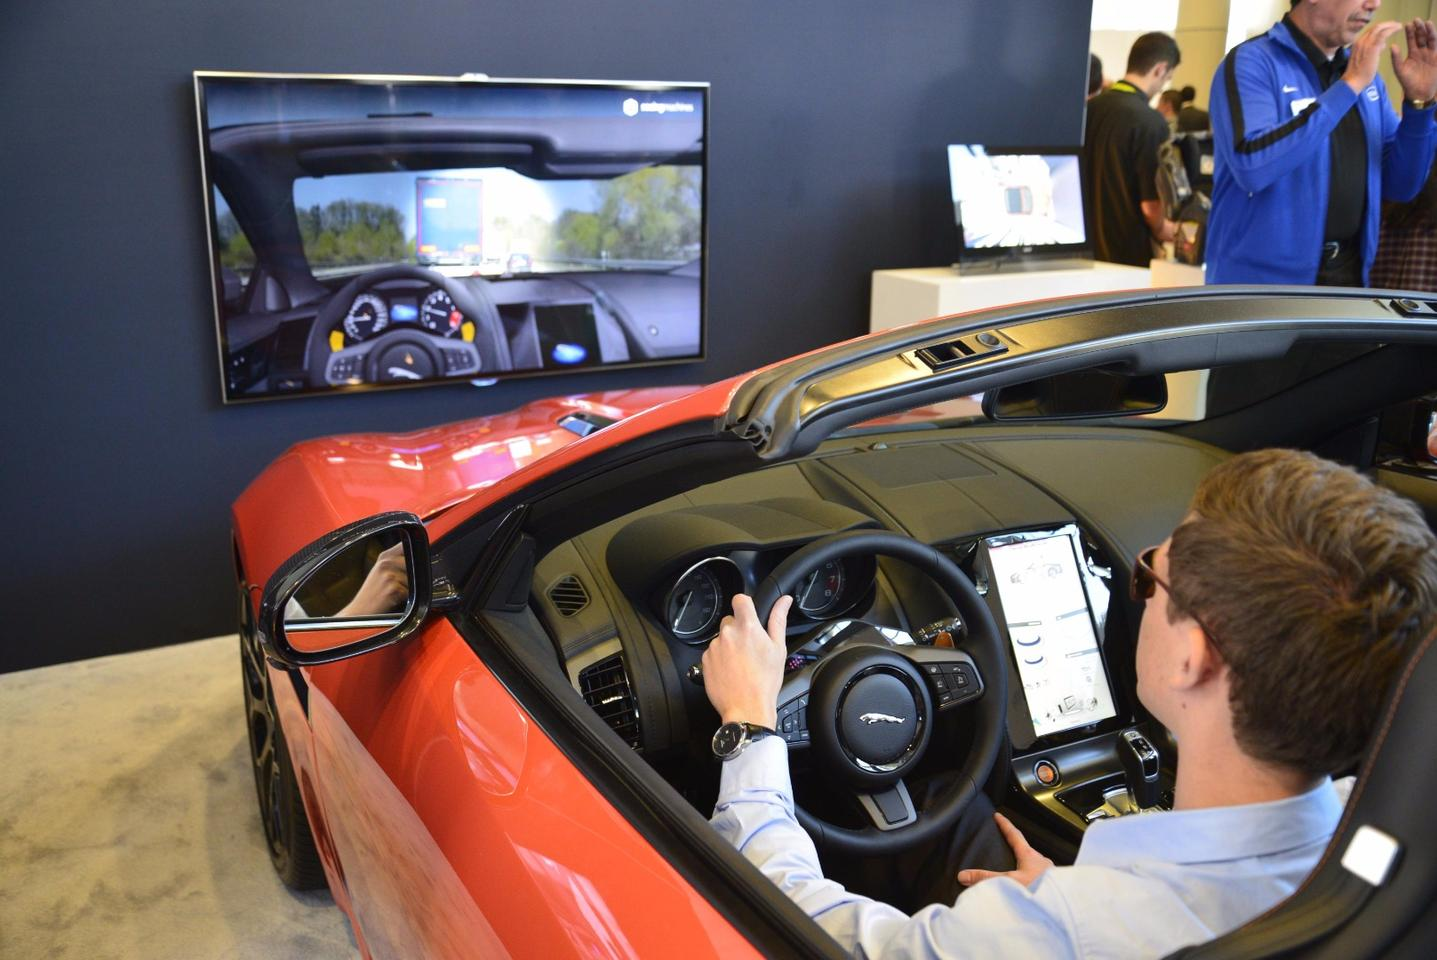 Jaguar's sophisticated eye-tracking system may be employed in a new, if mundane way – helping drivers by deciding when to operate the rear screen wiper